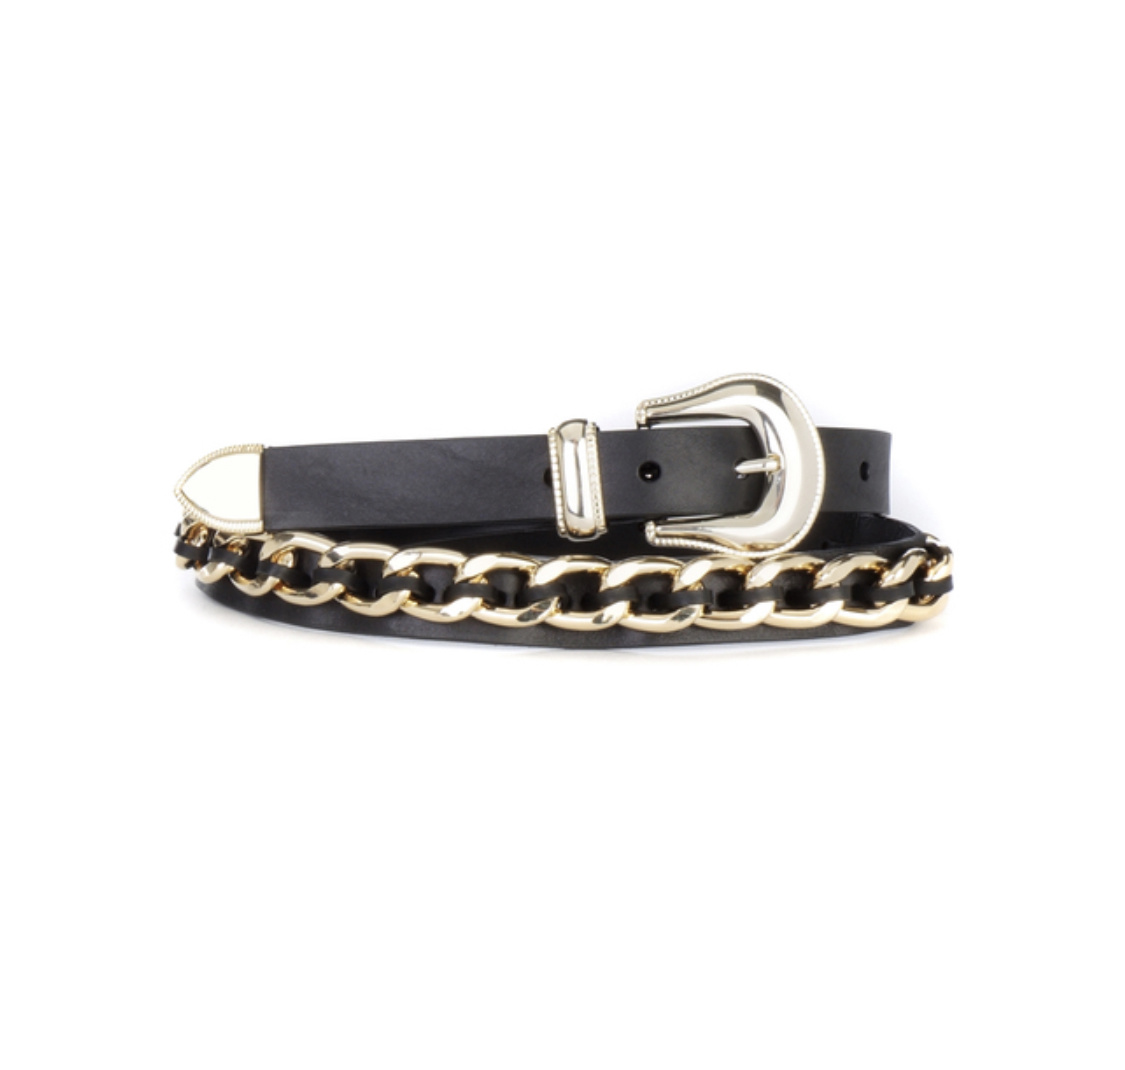 Brave Leather Elke Chain Belt